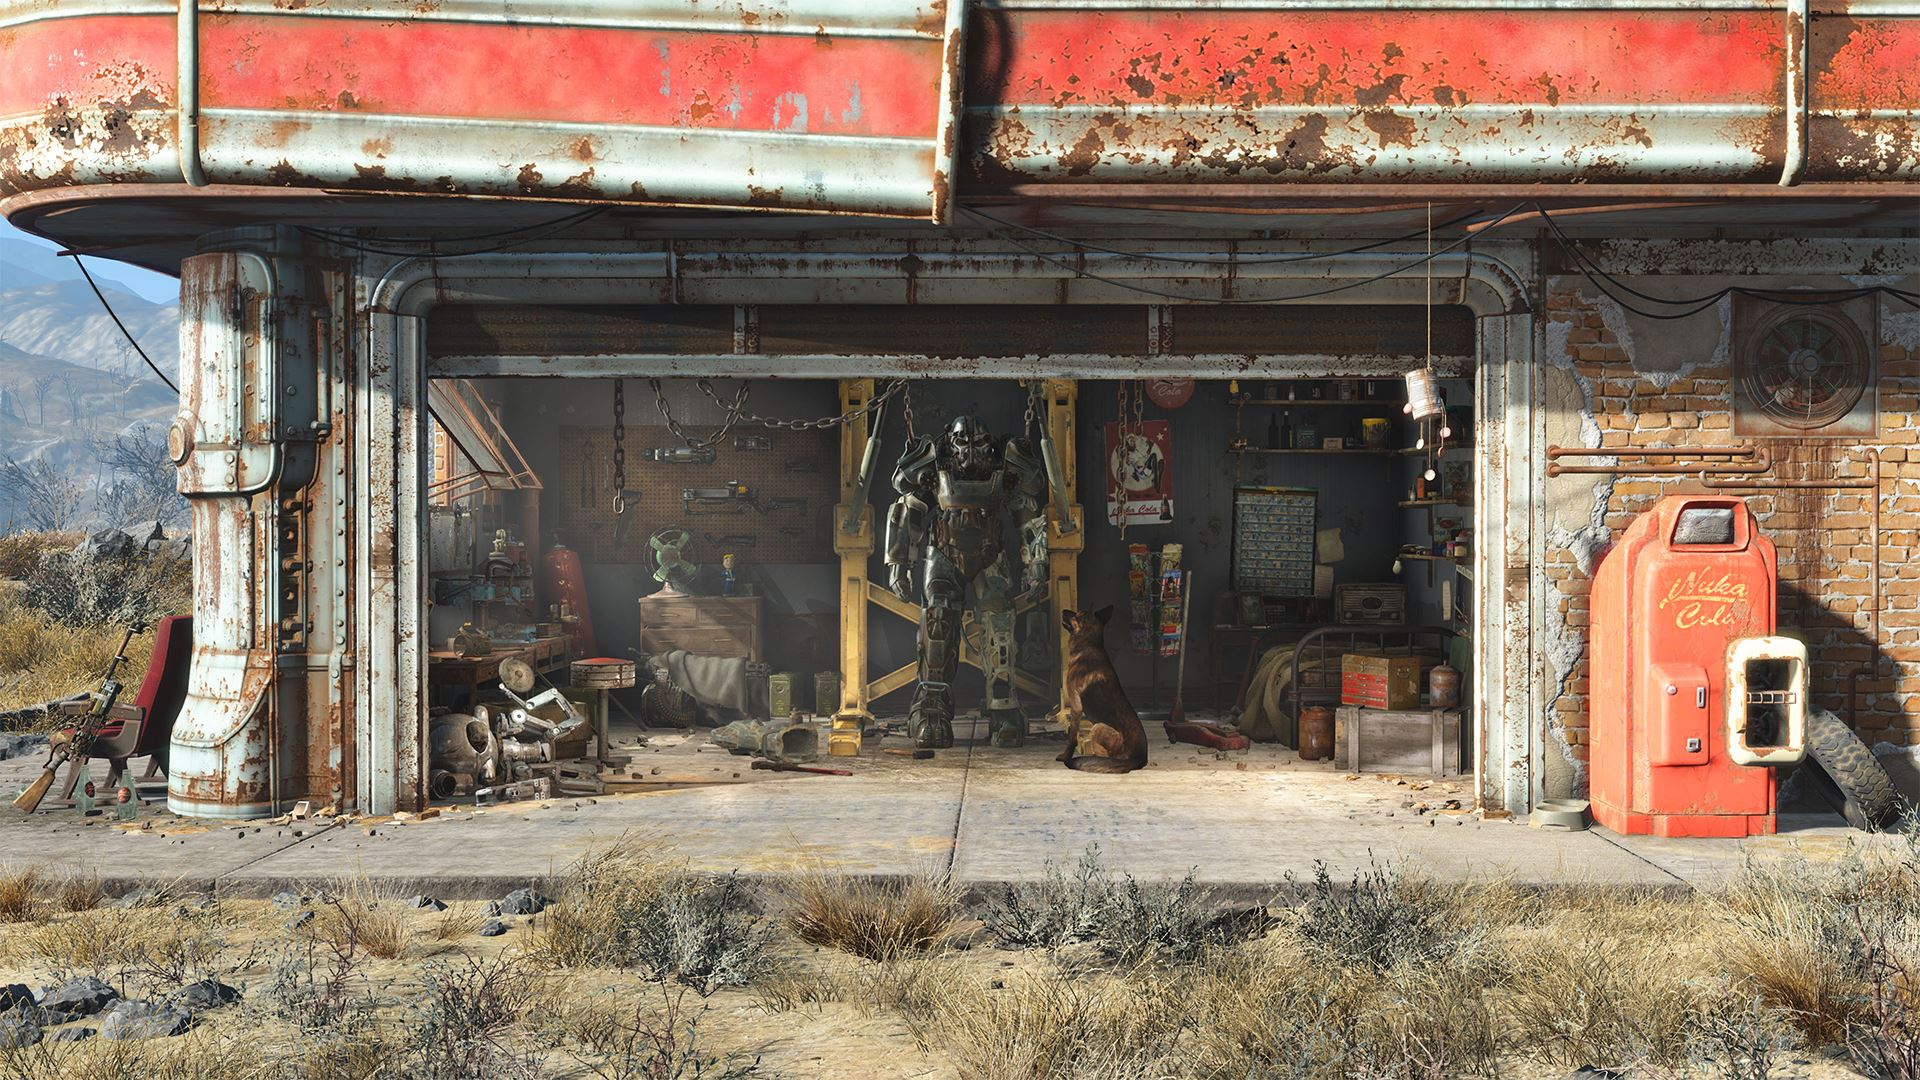 Free-Fallout-Digital-Deluxe-Bundle-Xbox-One-Digital-Download-wallpaper-wpc5805080